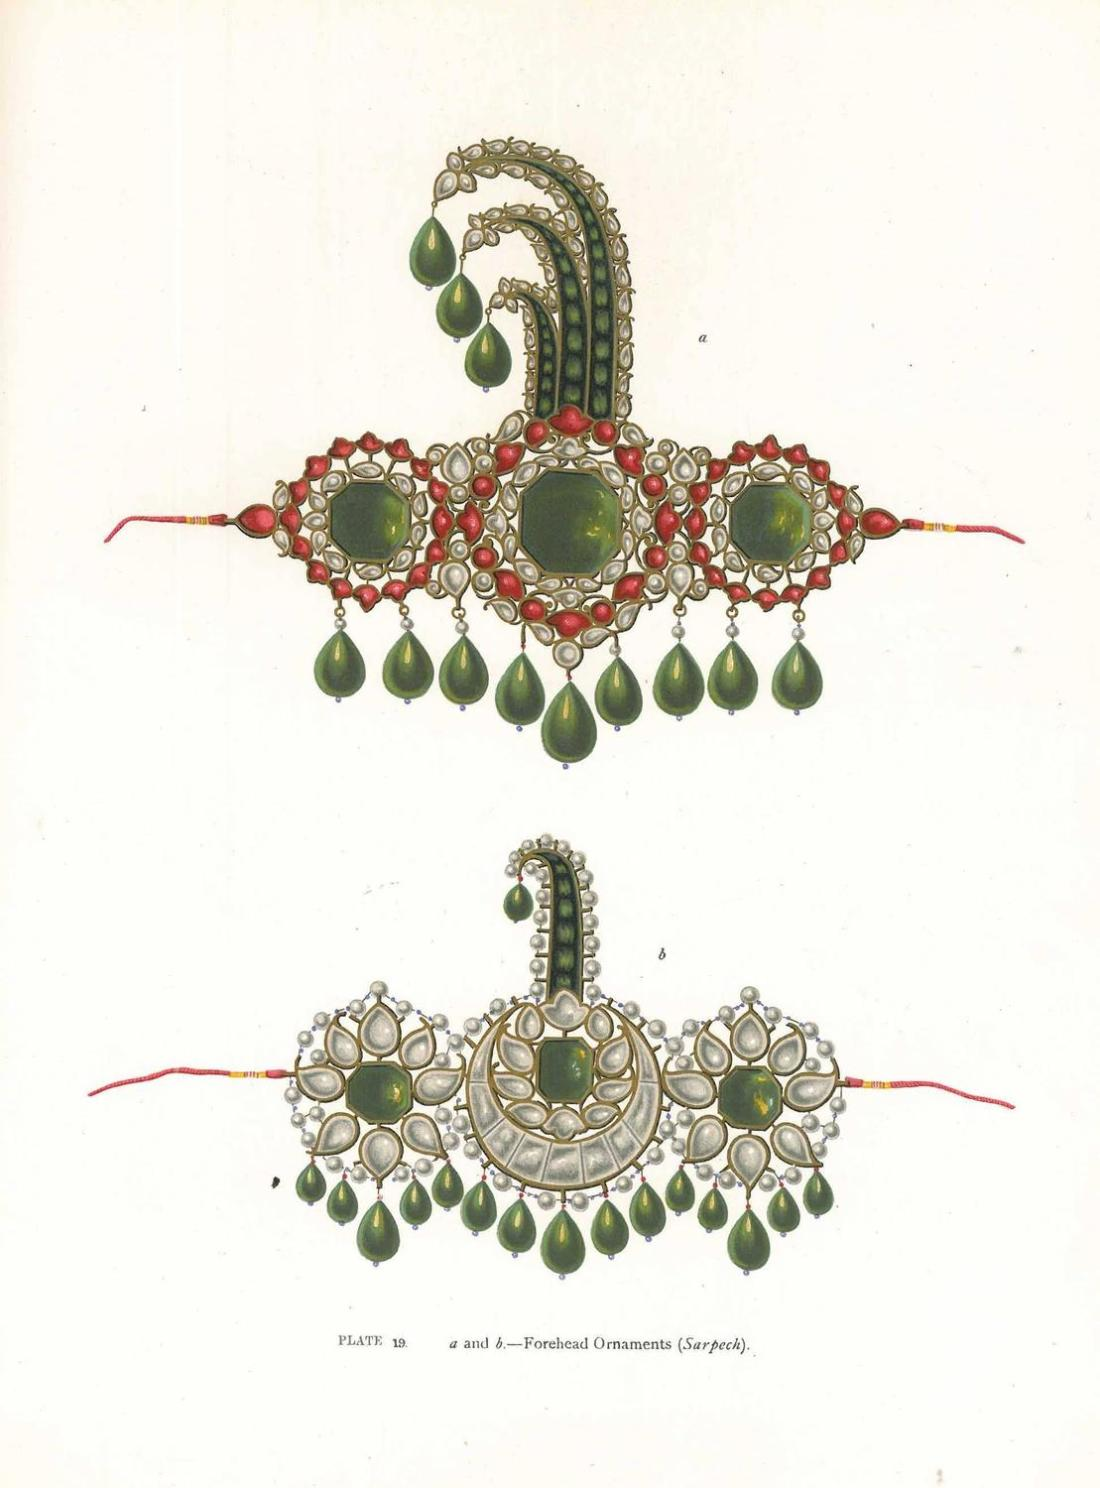 Forehead ornaments. Plate 19.